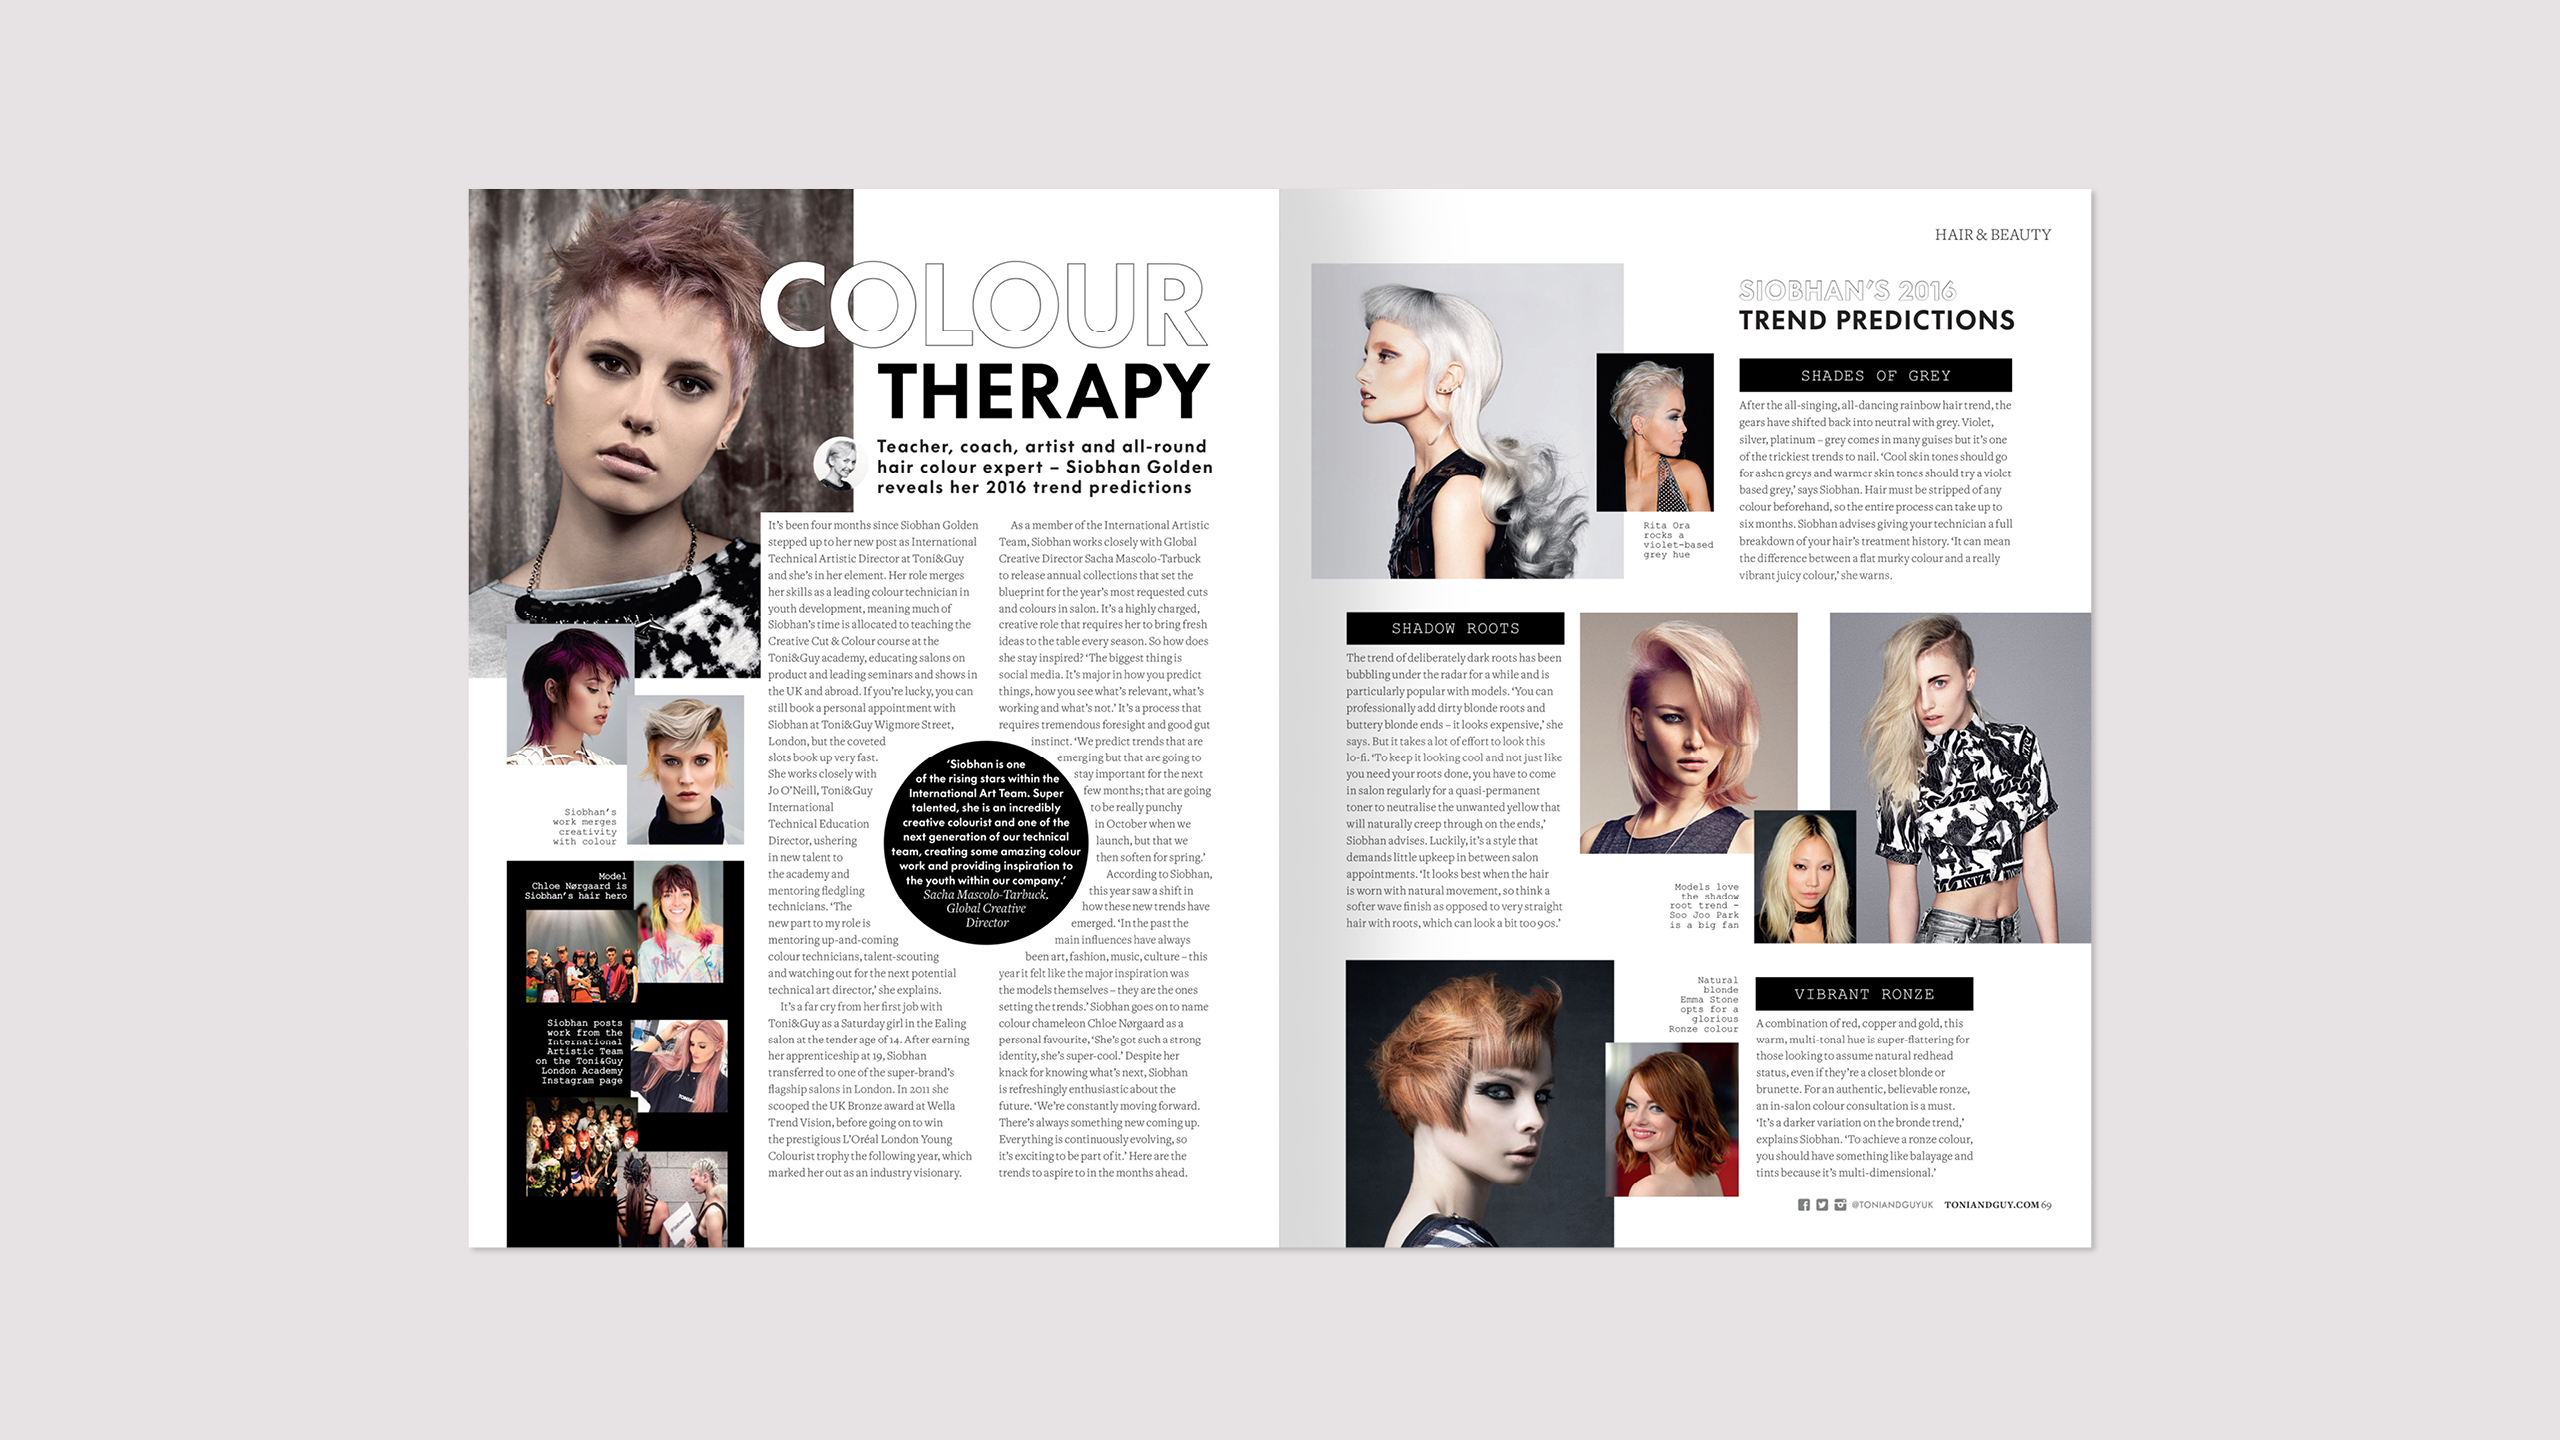 Toni&Guy spring issue 41